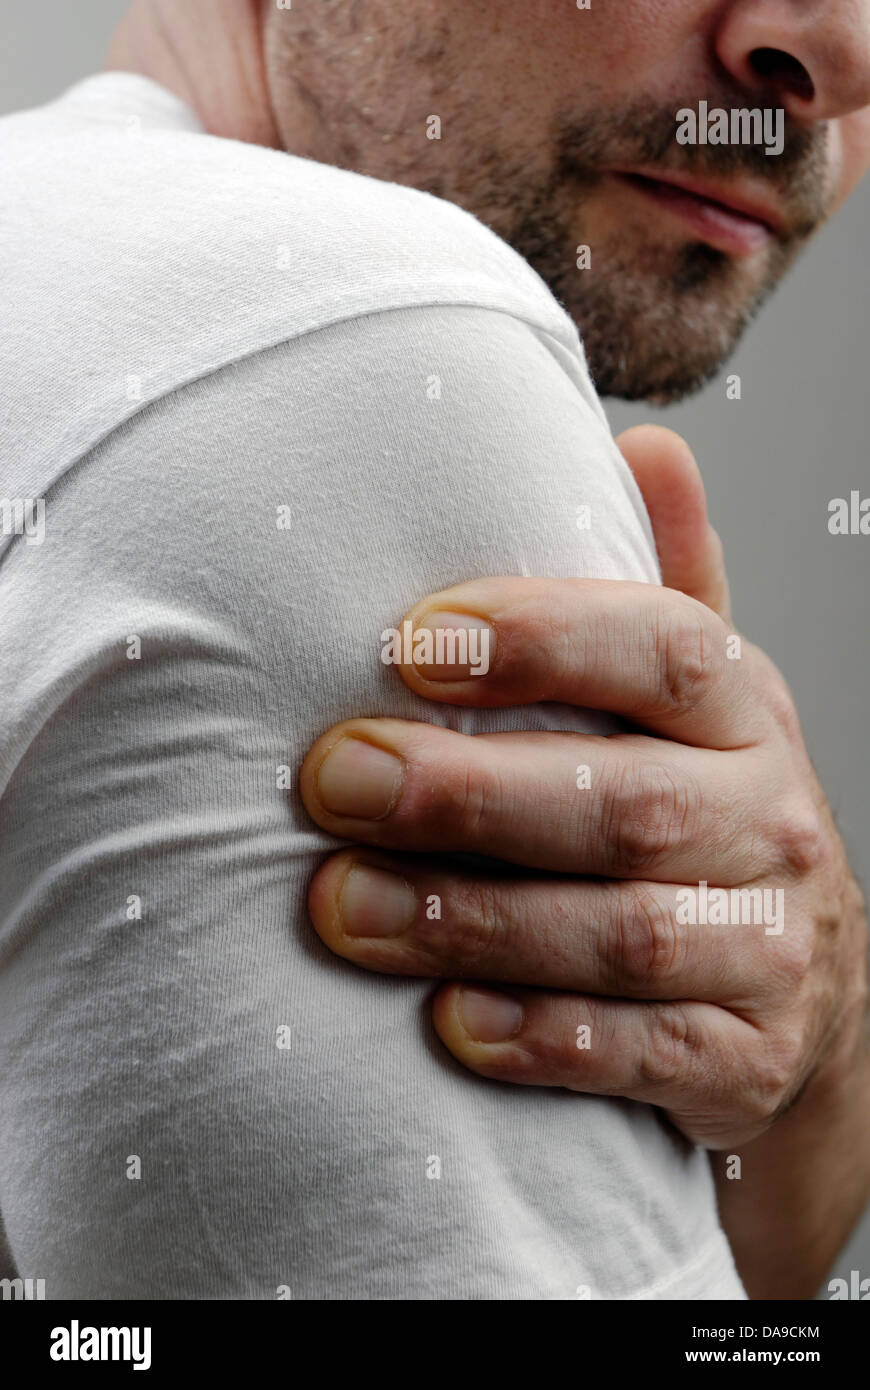 Pain in the upper arm - Stock Image